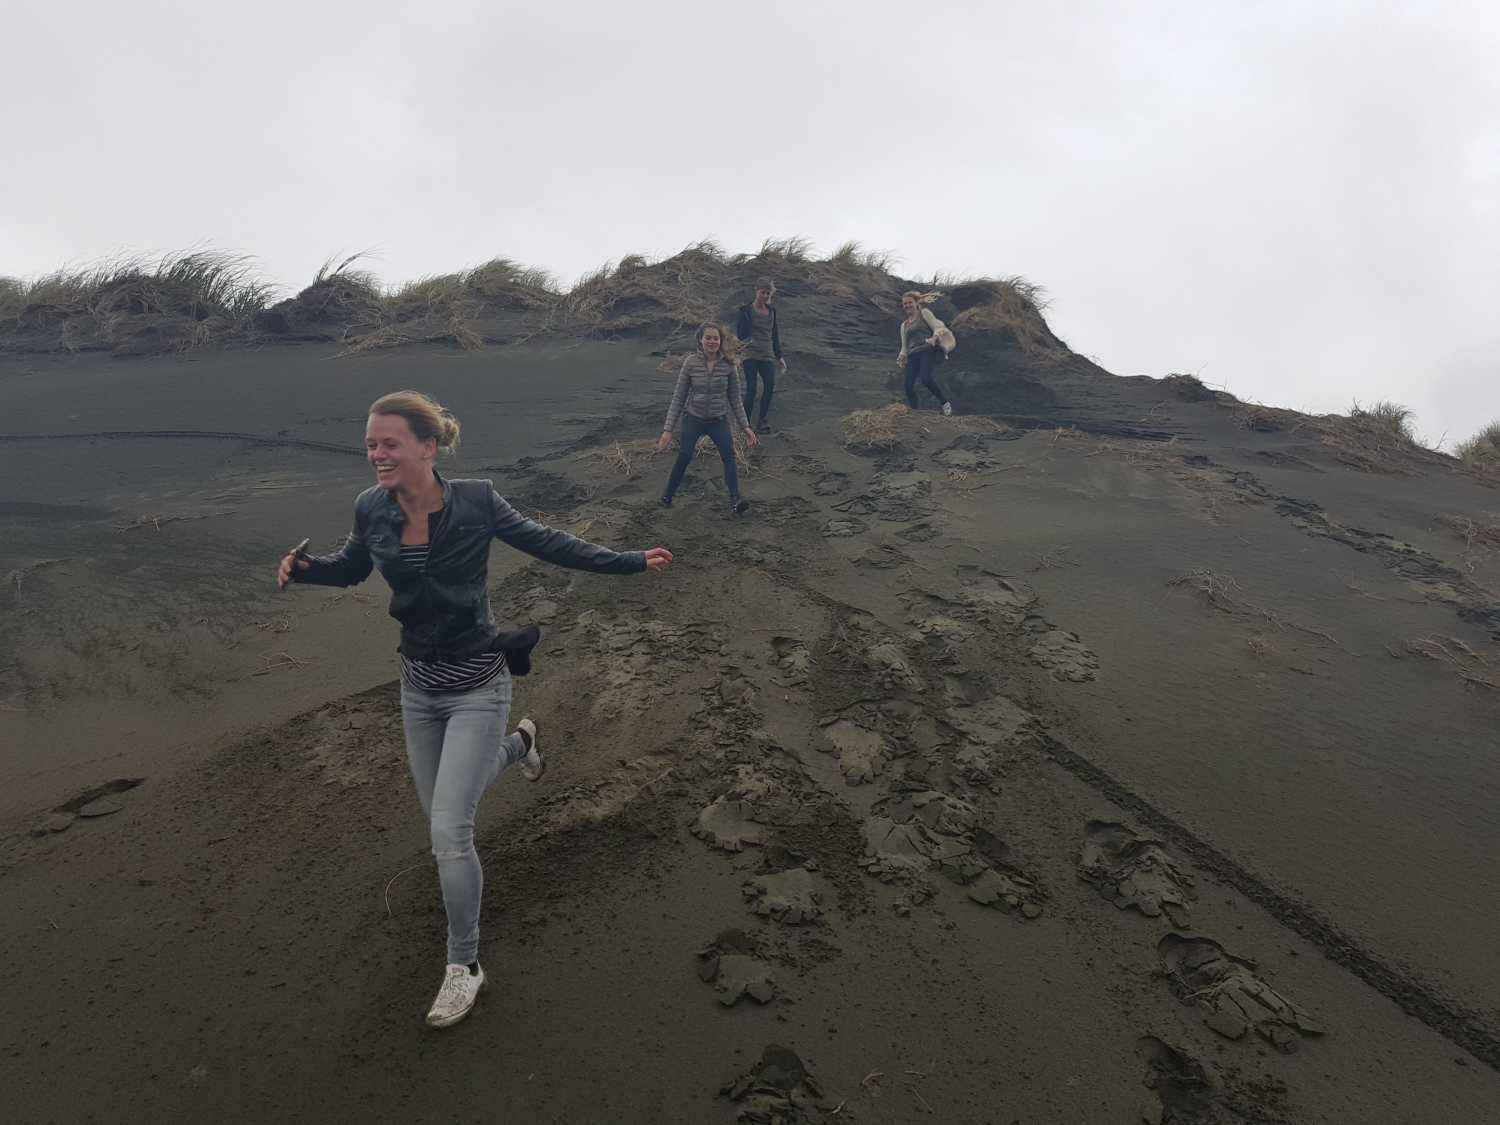 Tour group runs the dunes at Muriwai